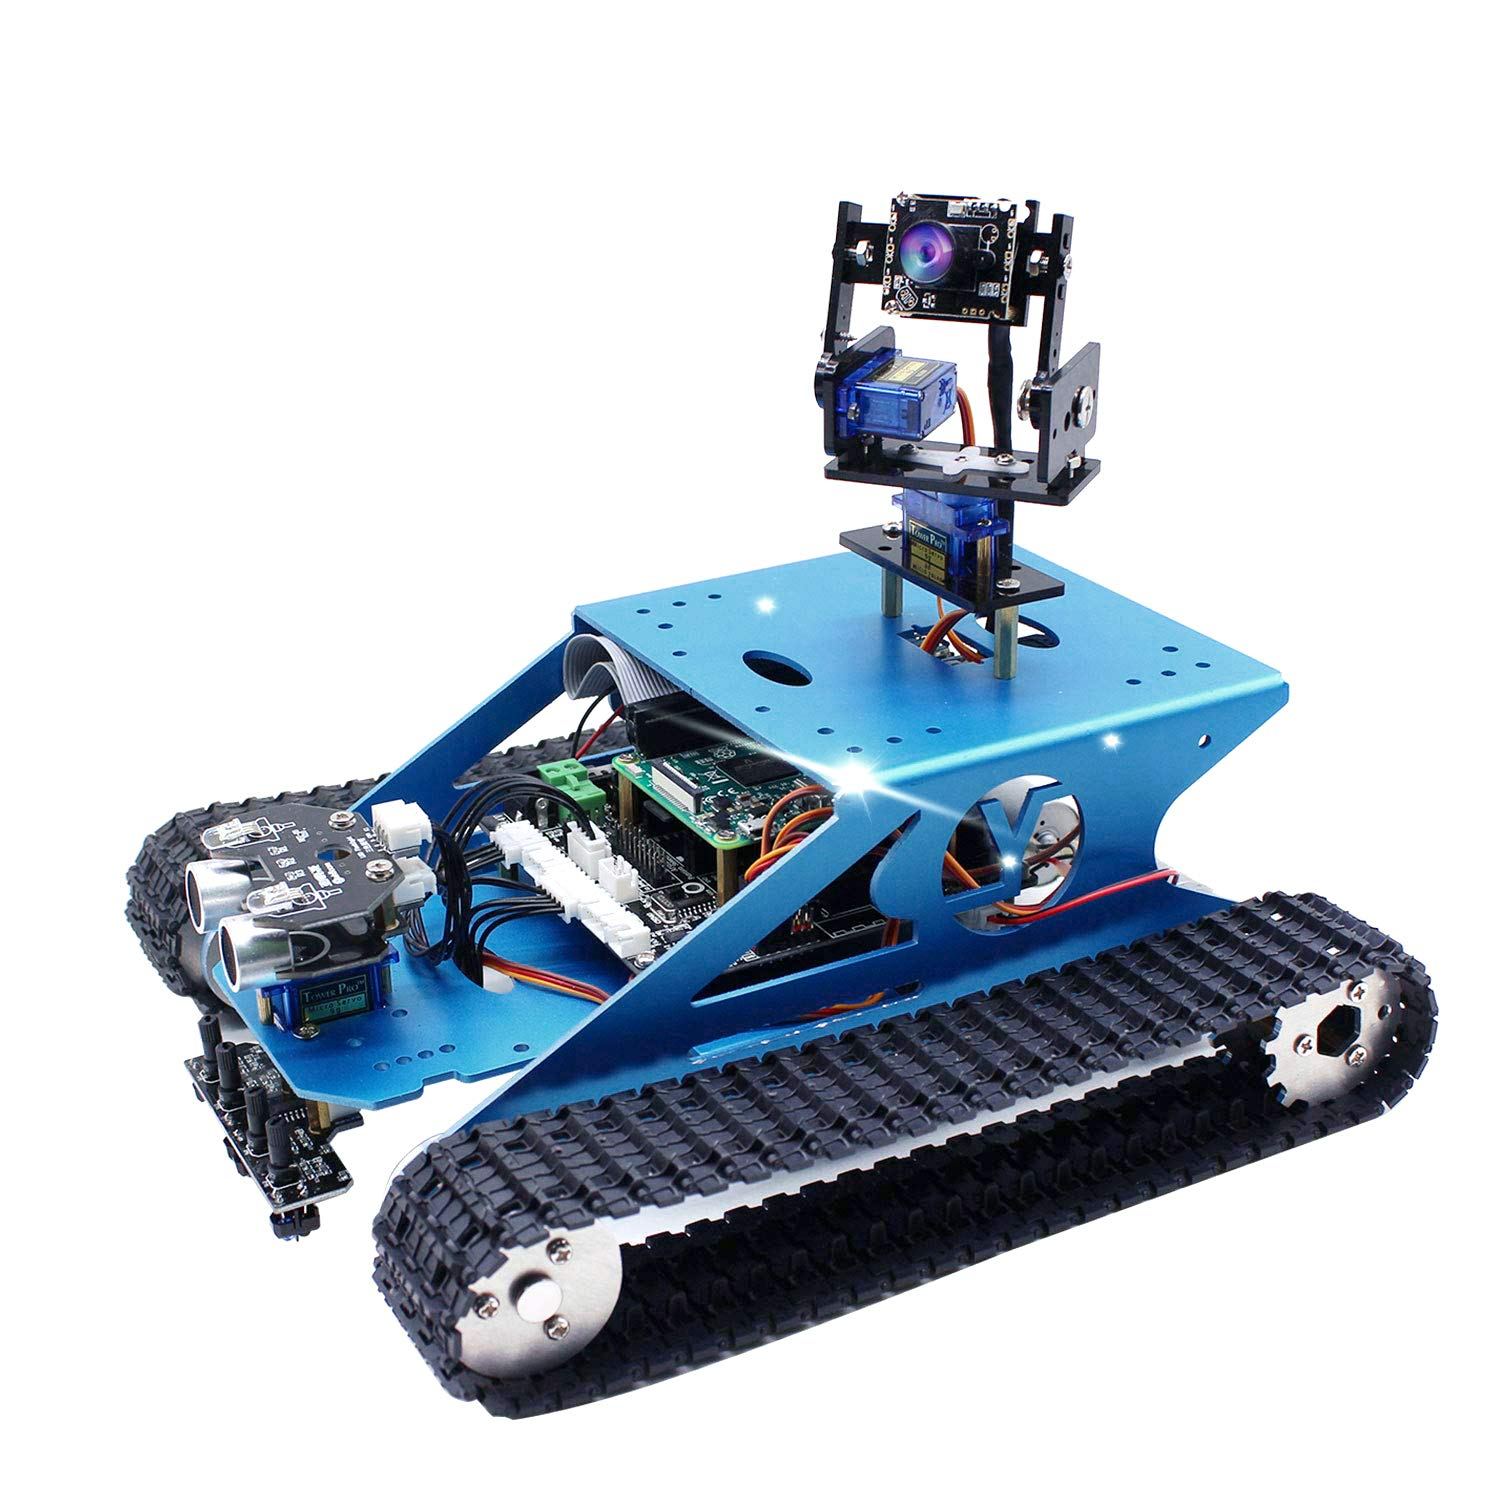 Robot Educativo para armar y programar Raspberry Pi (no inc)